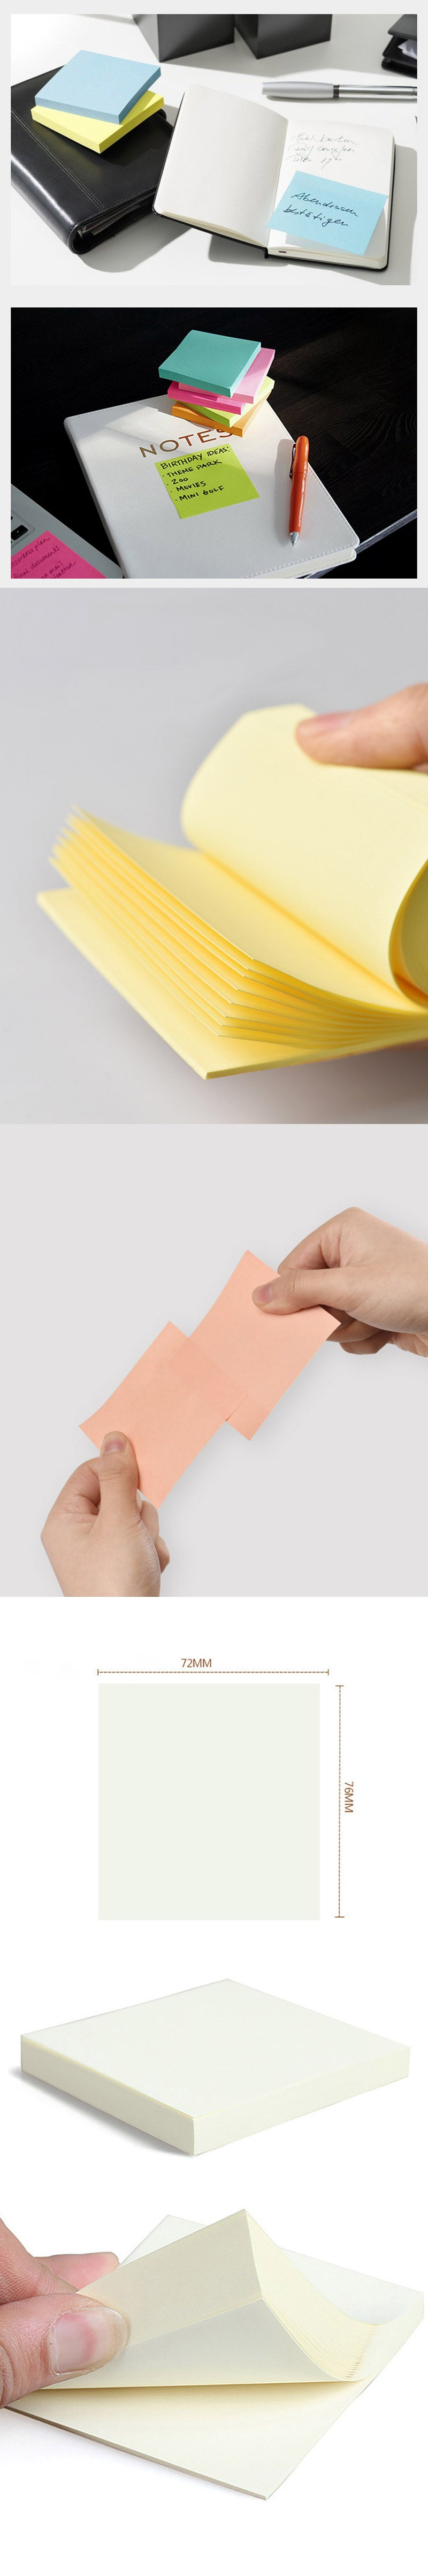 Post-it 3M Super Sticky Notes 4 Pads Pack - Detail